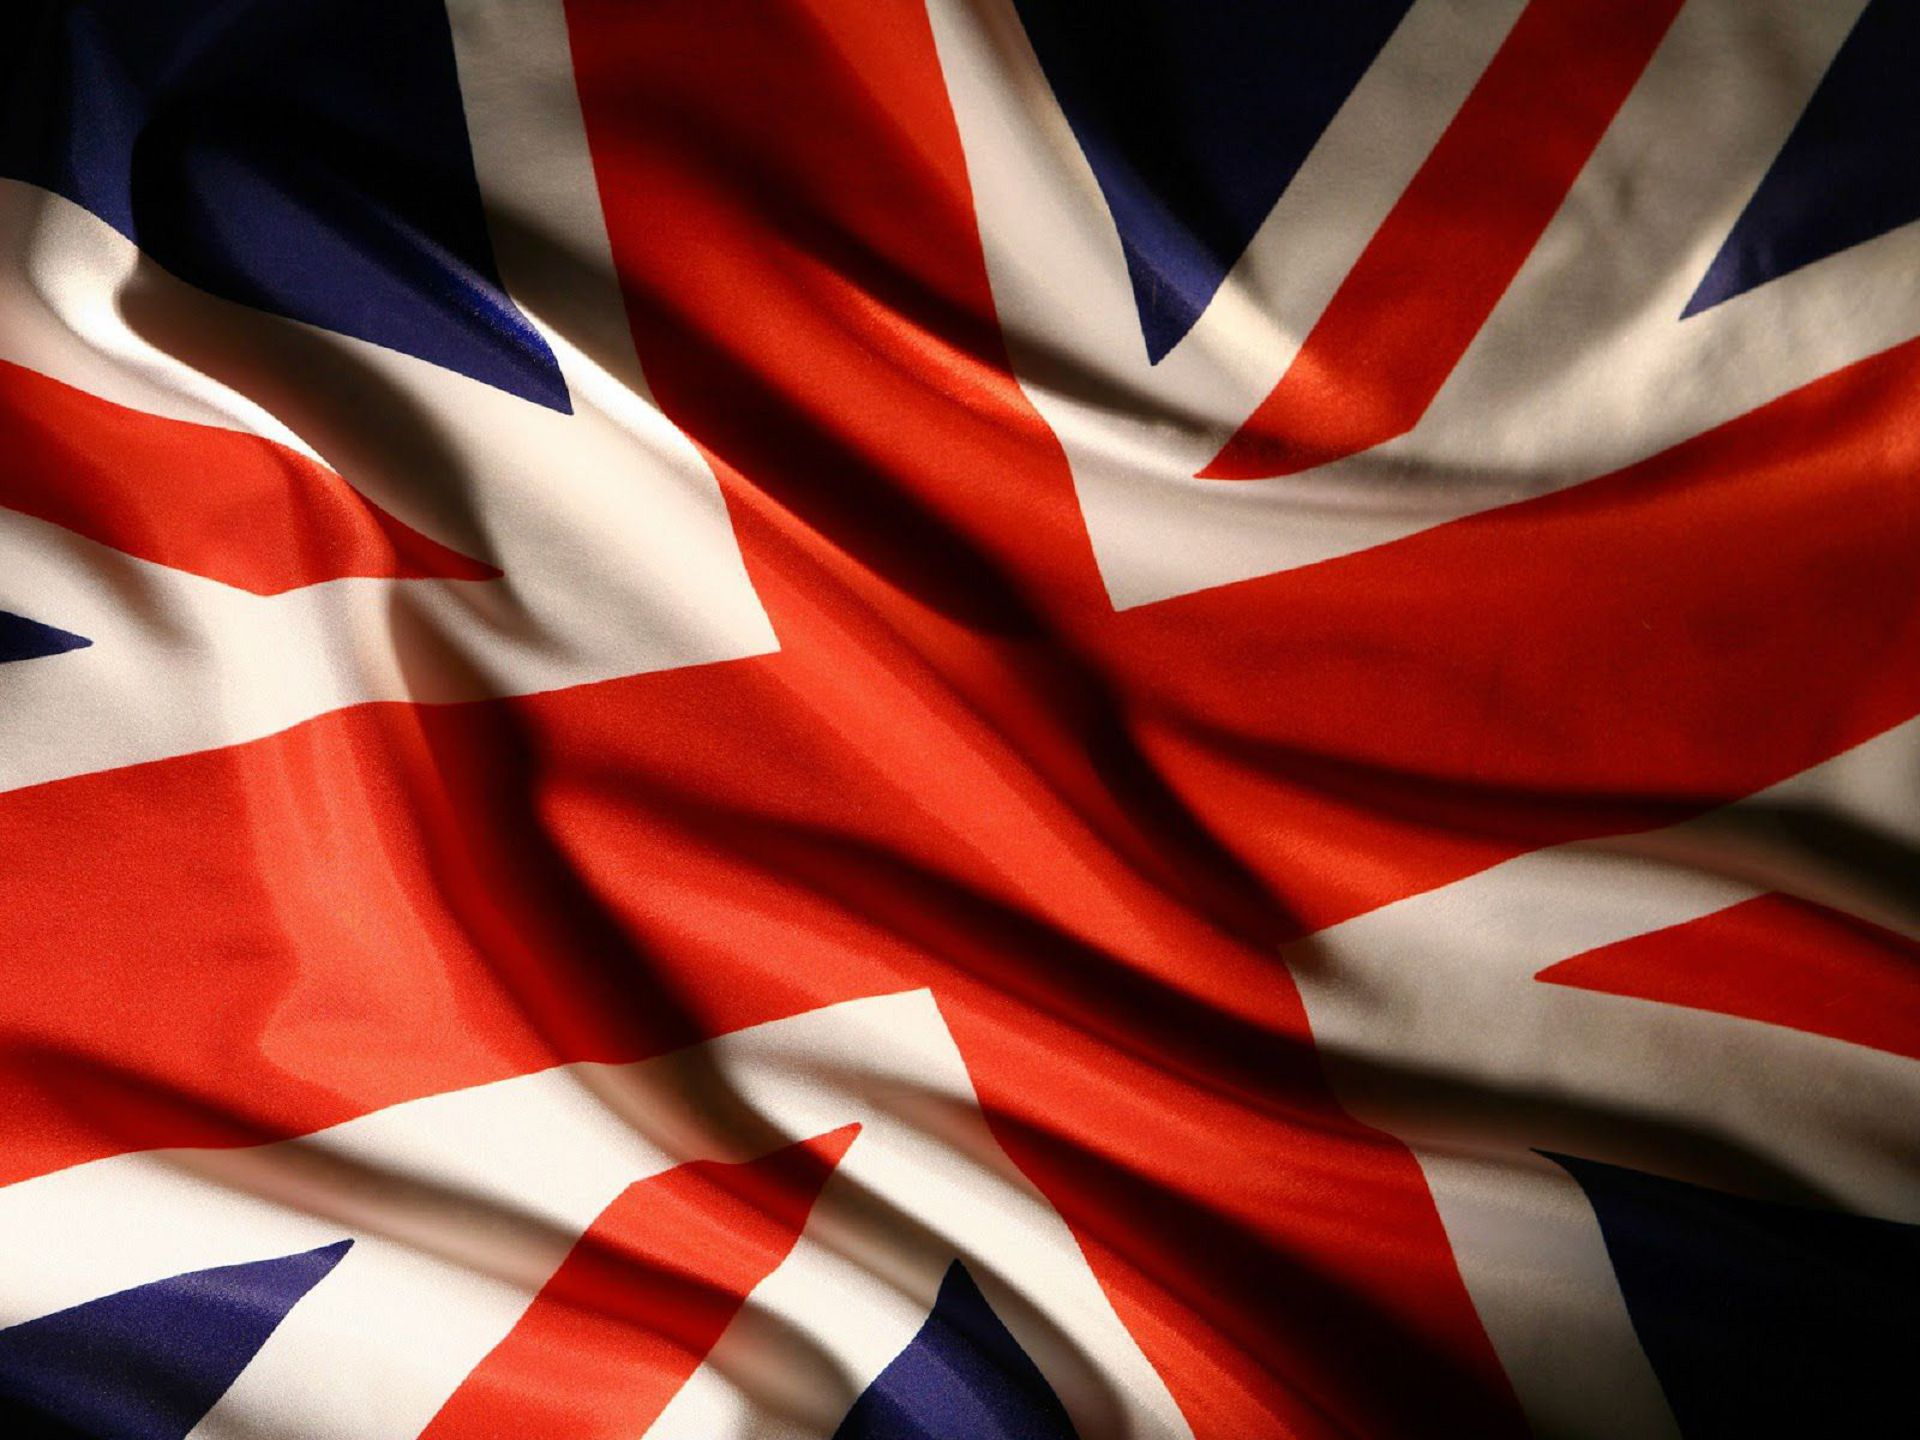 British Flag Wallpaper Pack